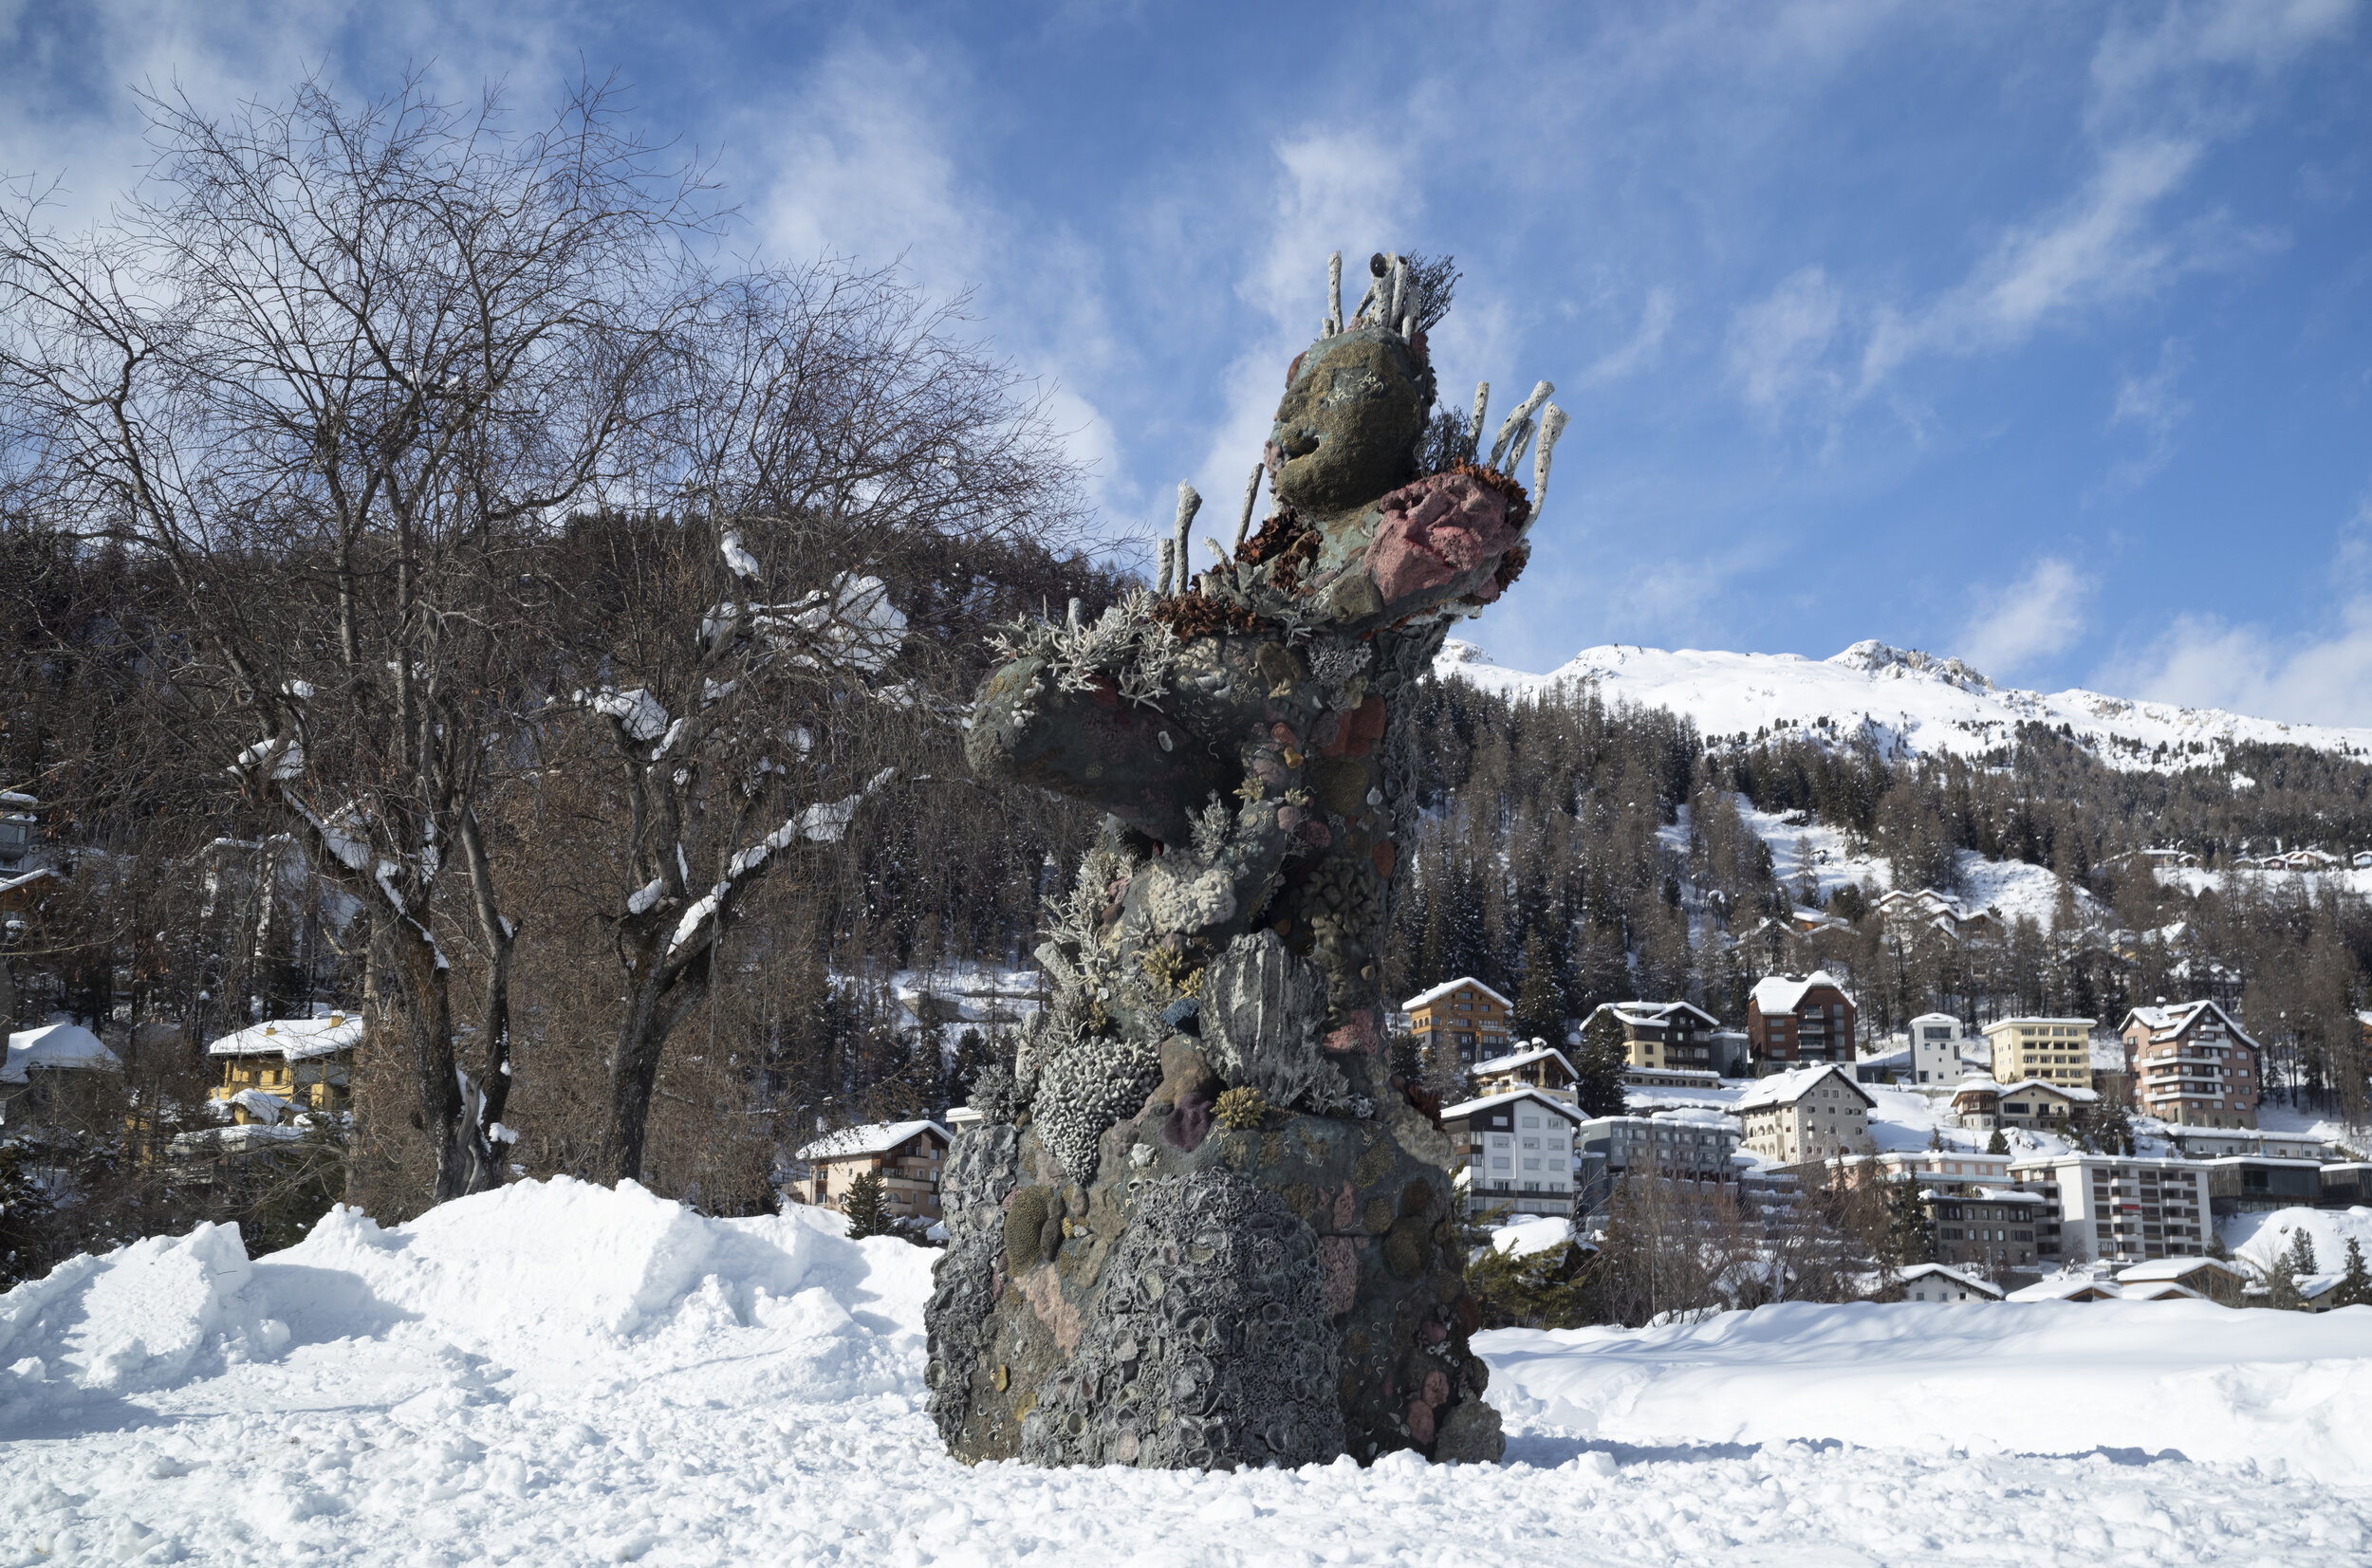 Damien Hirst, Two Figures with a Drum, 2021, St Moritz, Ludains